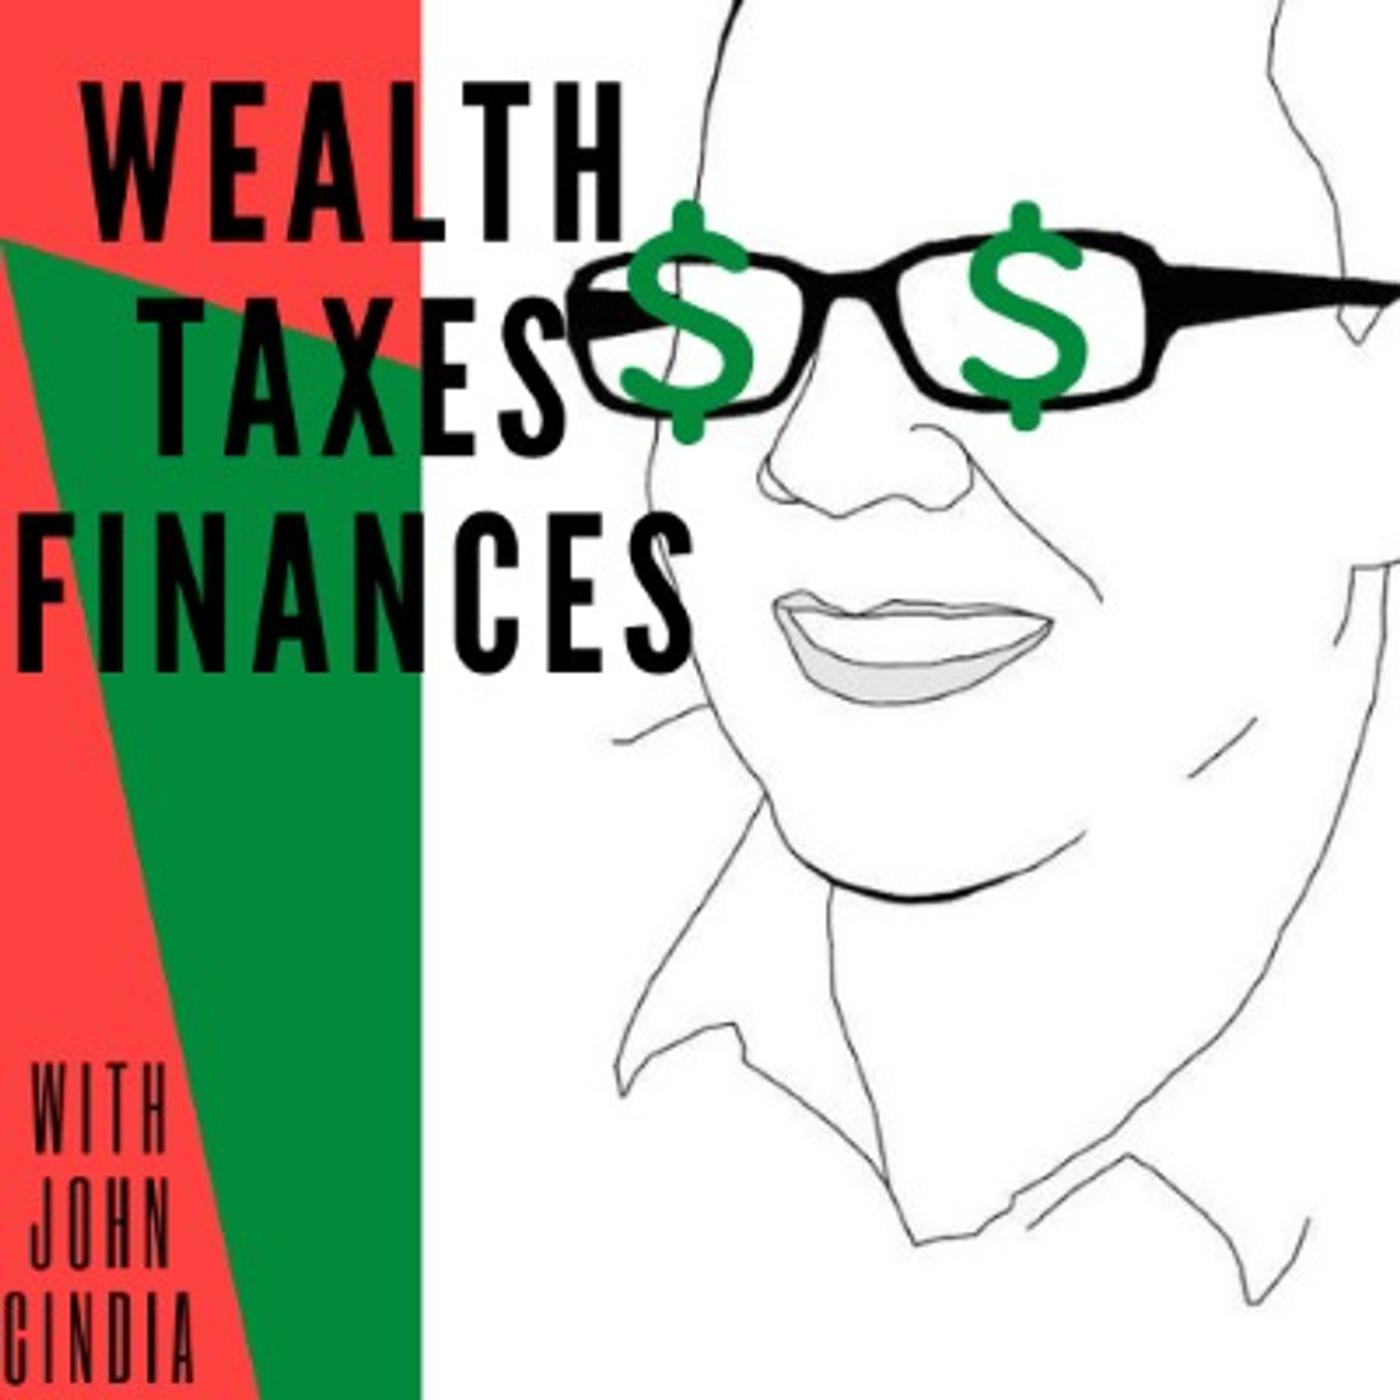 Wealth, Taxes, and Finances with John Cindia (podcast) - John Cindia |  Listen Notes